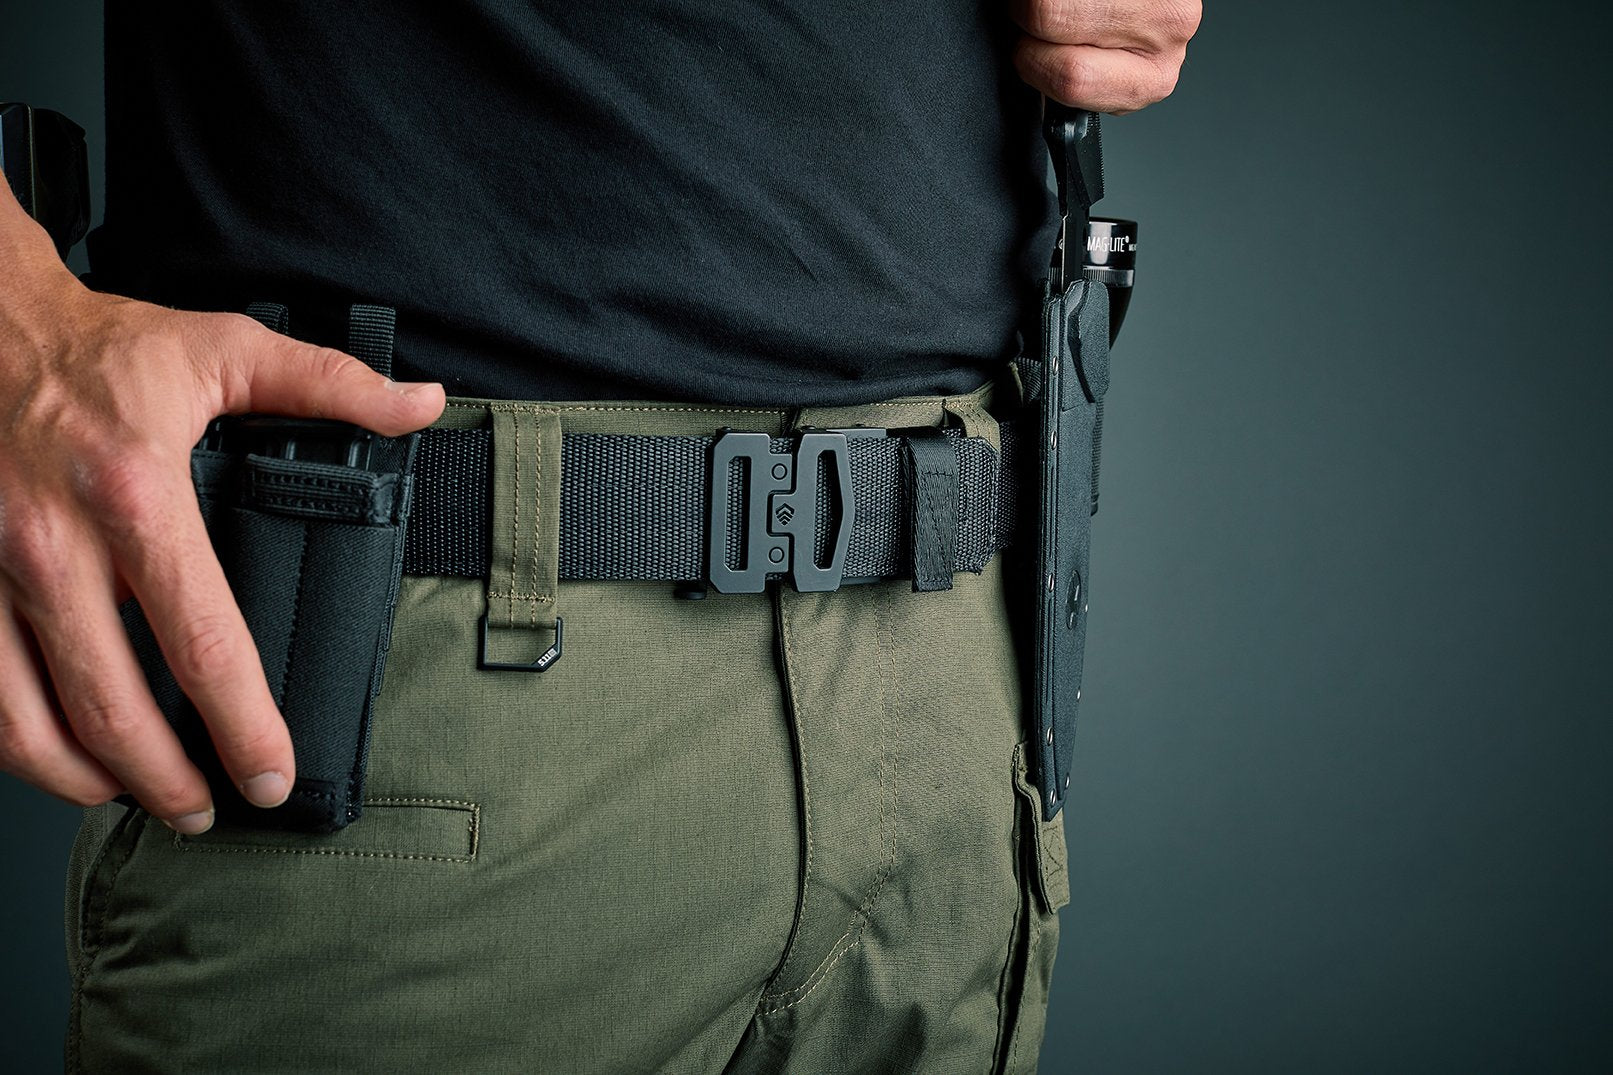 Kore Tactical Gun Belts G1 Buckle Black Tactical Belt Kore Essentials More ideas from kore essentials. g1 buckle black tactical garrison belt 1 75